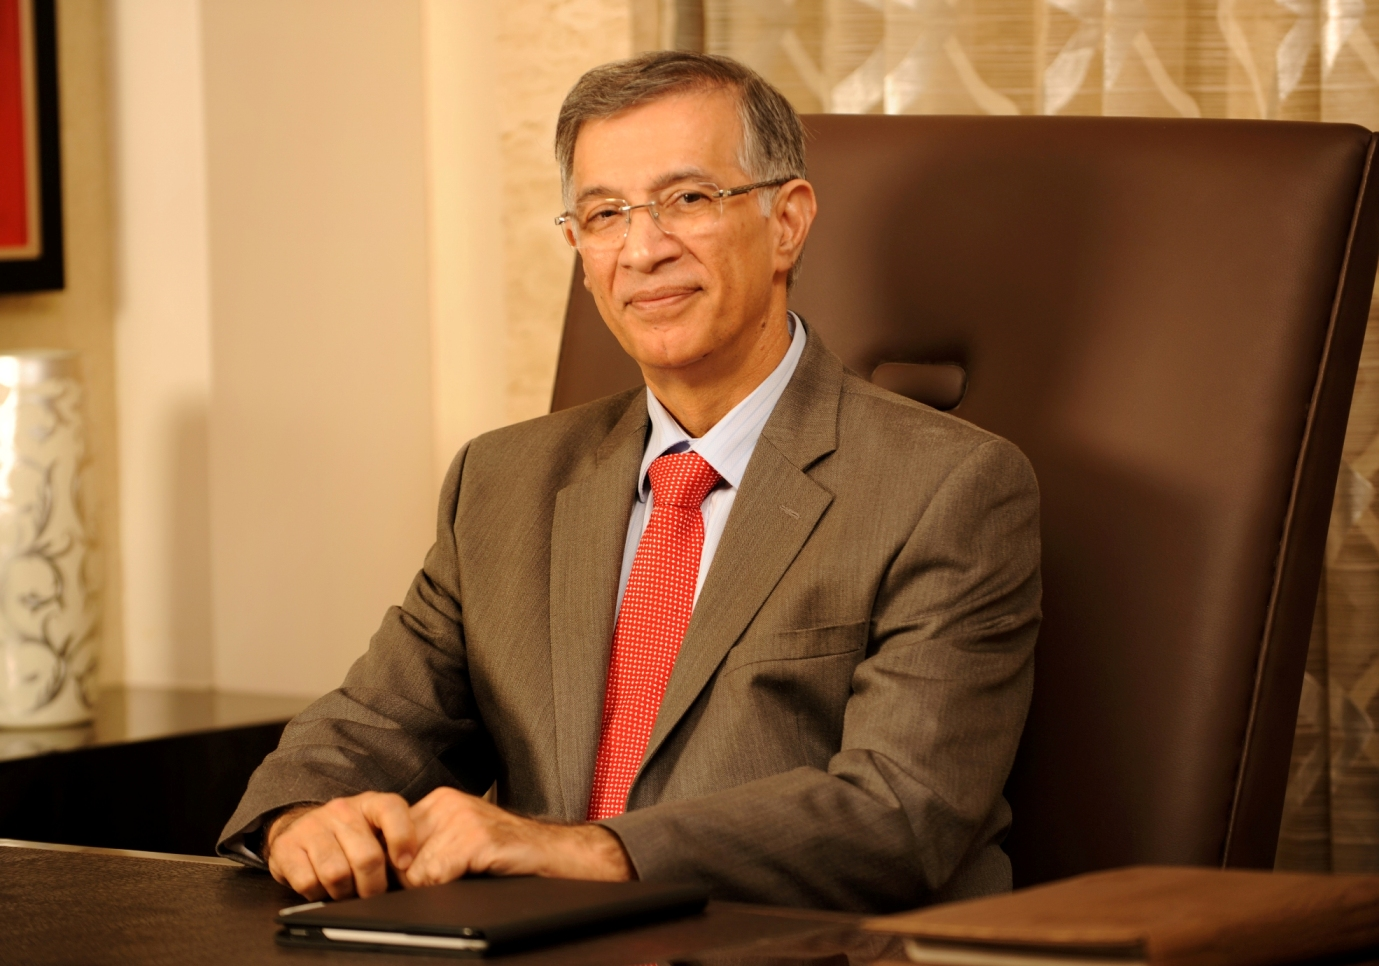 Affordable Housing gets another boost with year's extension of Section 80-IBA of the Income Tax Act: Dr. Hiranandani